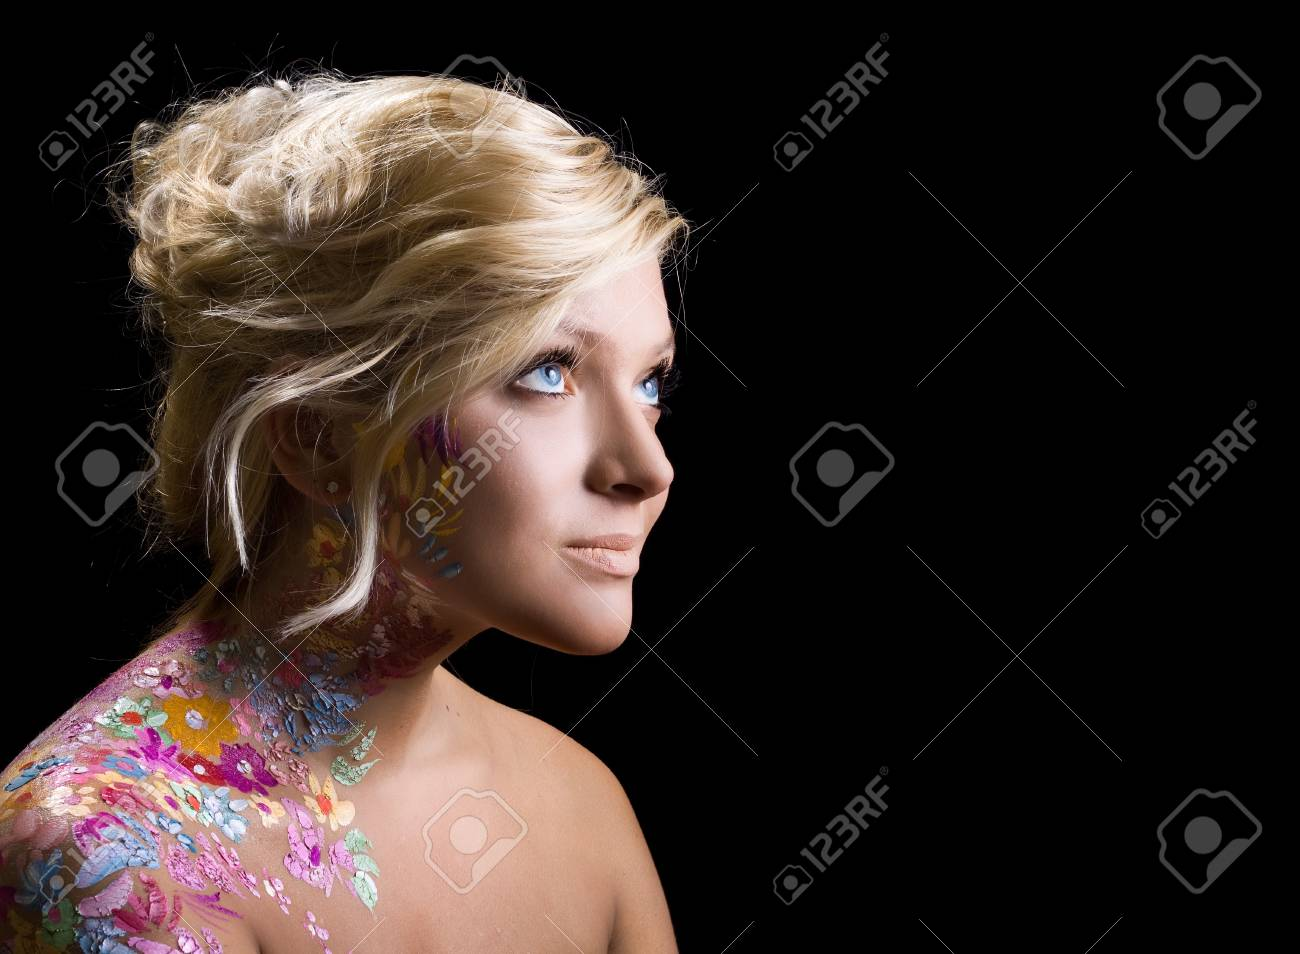 portrait of beautiful girl with floral theme bodyart on black background Stock Photo - 8192646